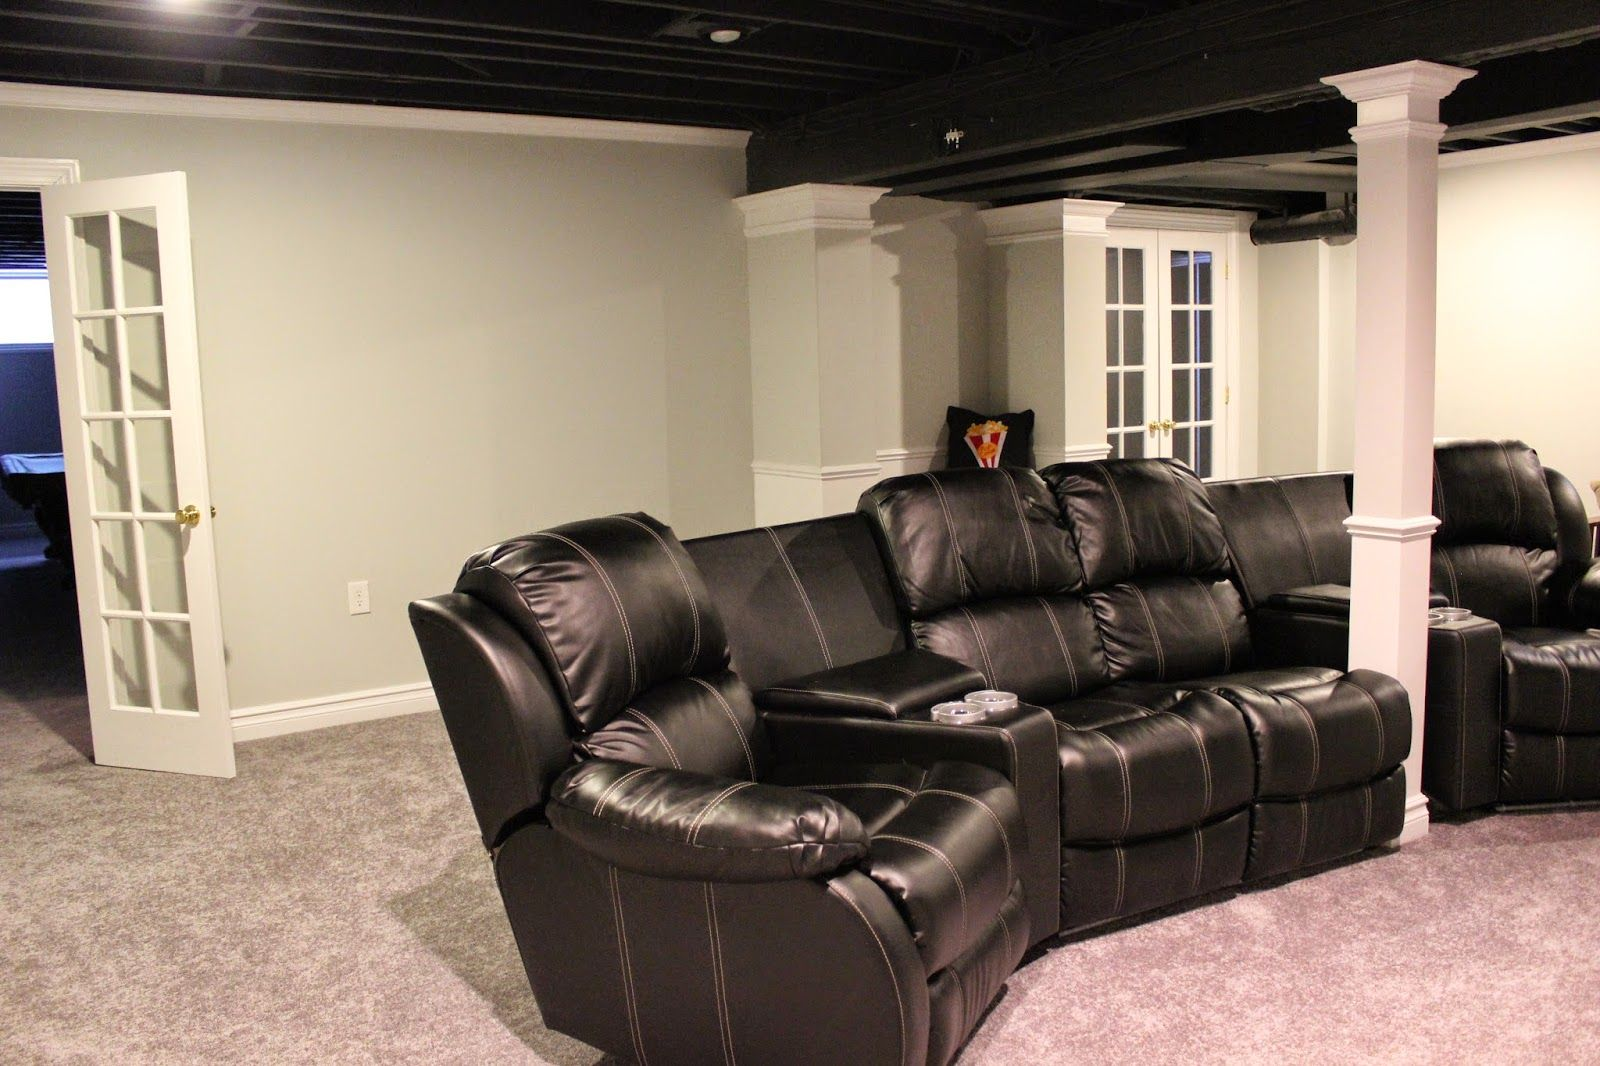 Club Basement Ideas Painting 101 smart home remodeling ideas on a budget | open ceiling